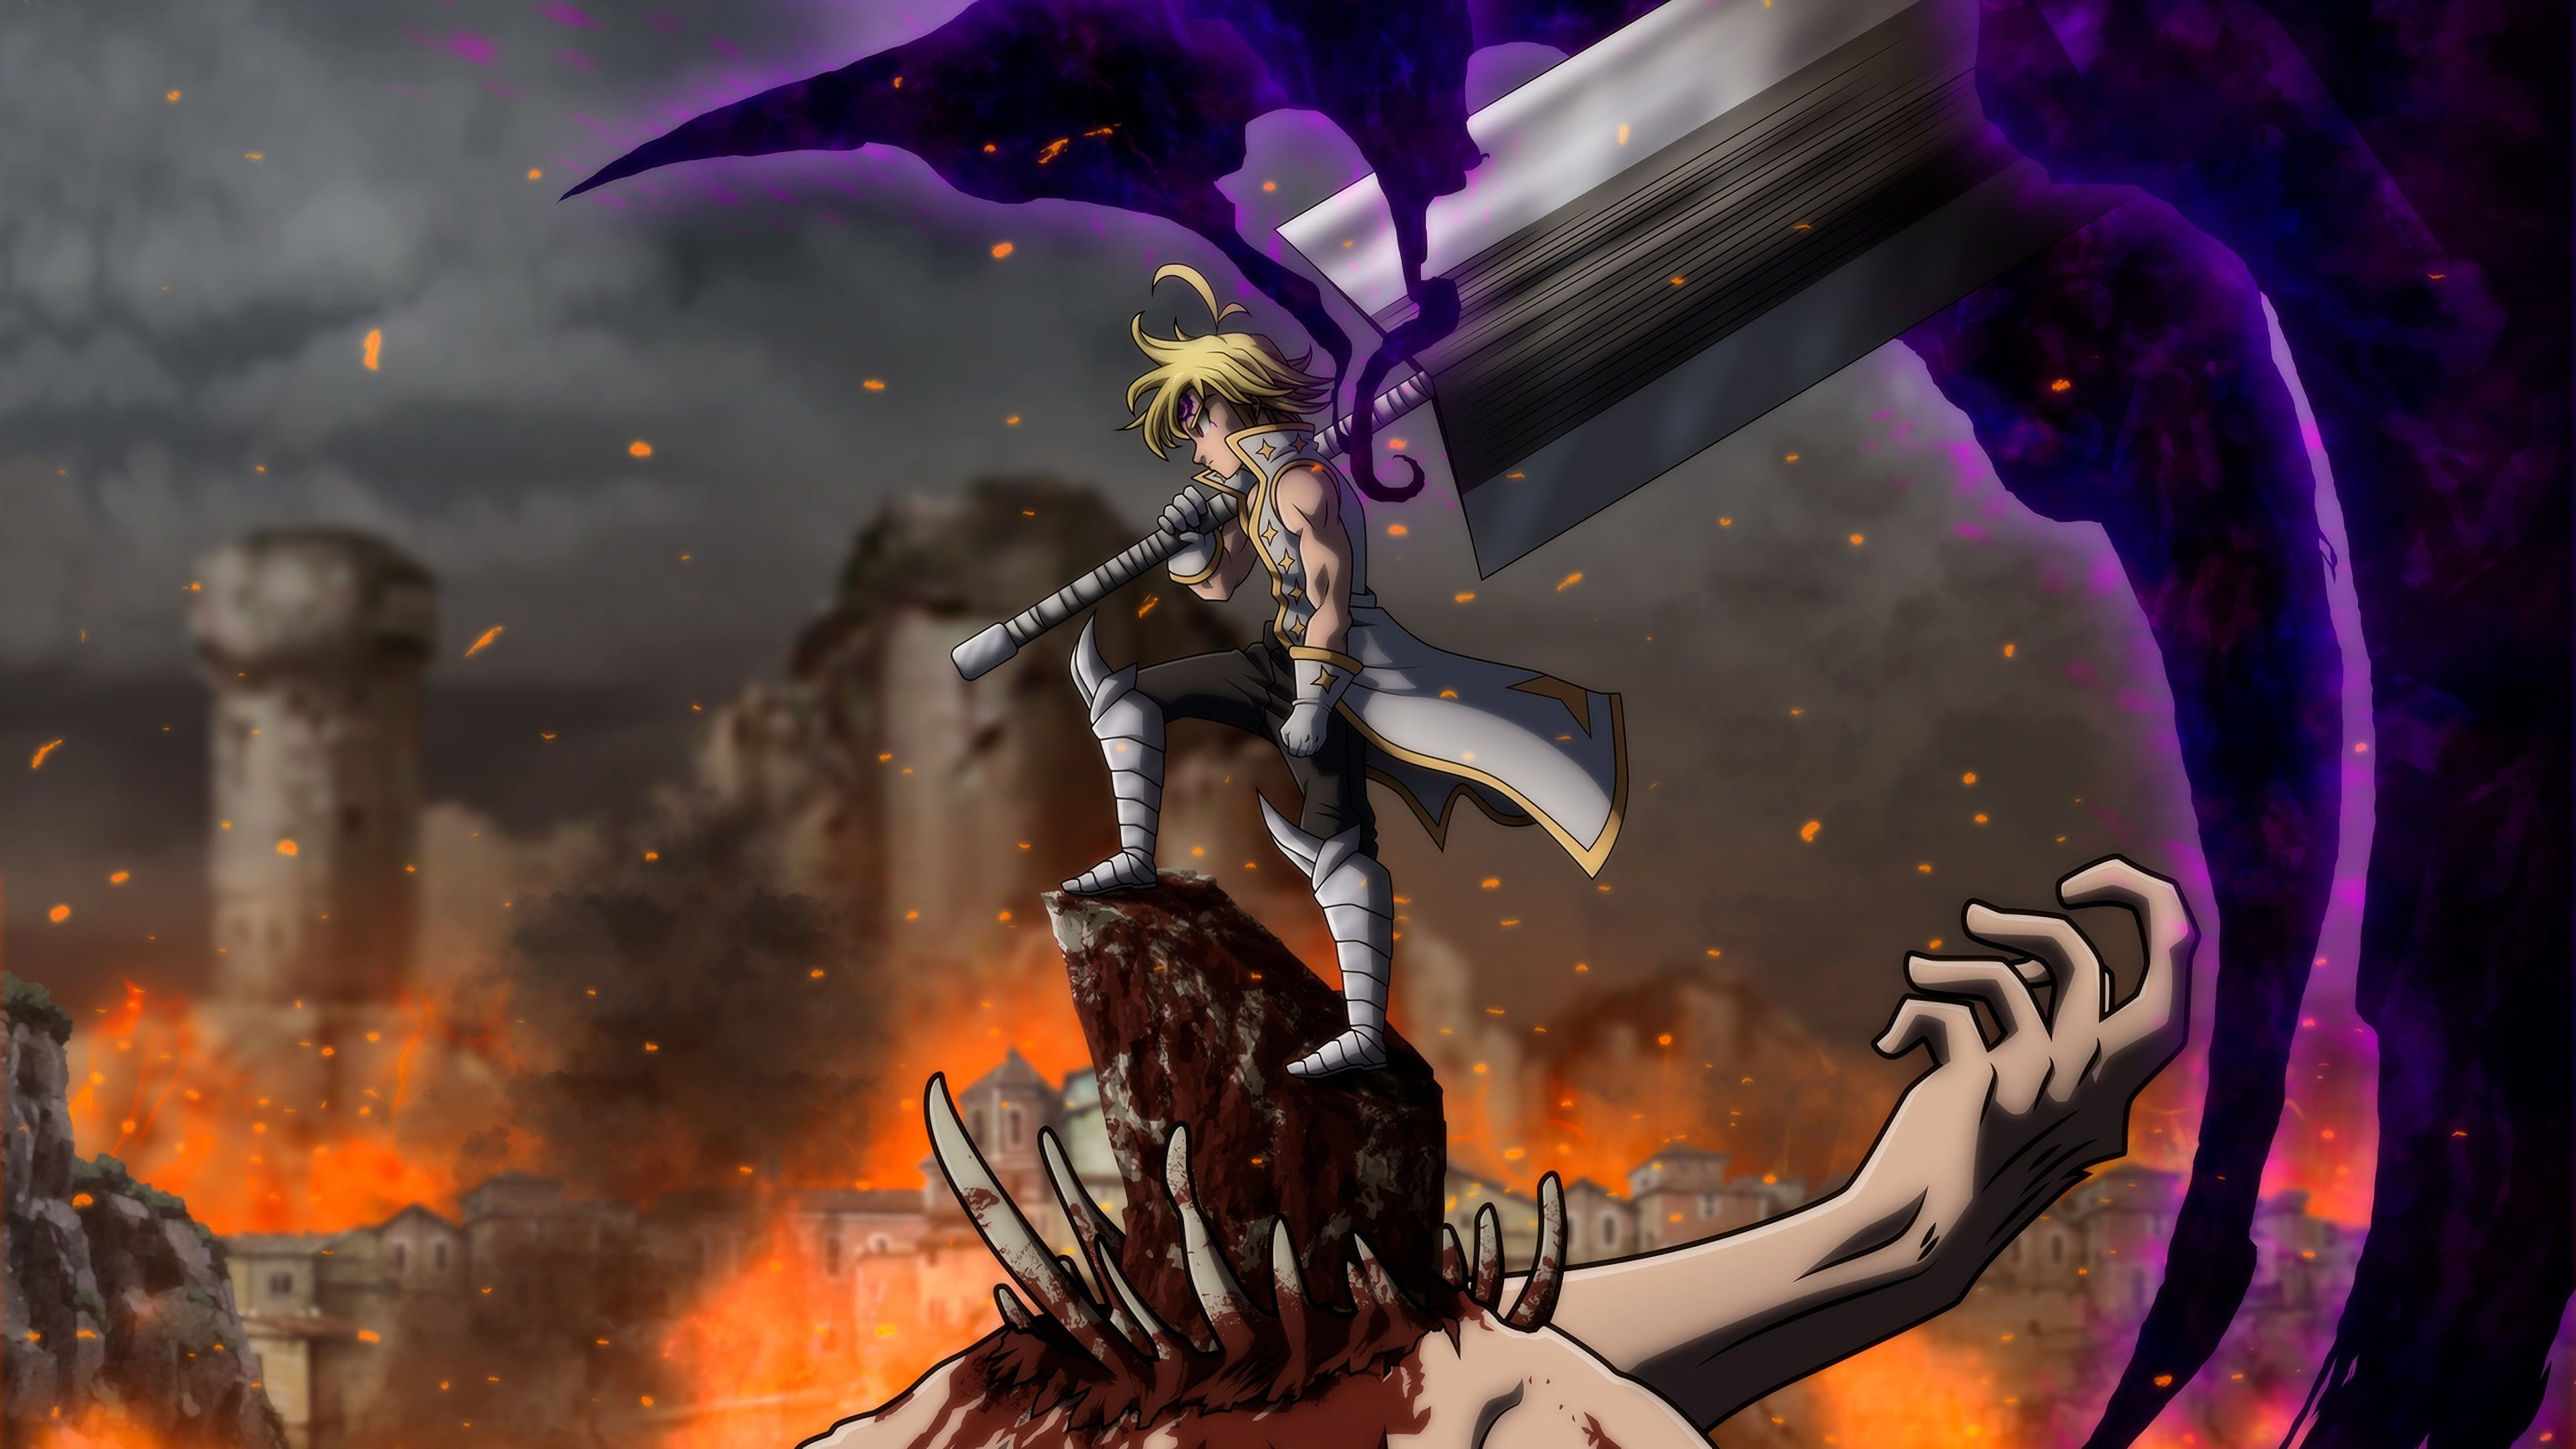 Anime The Seven Deadly Sins Demon King The Seven Deadly Sins Meliodas The Seven Deadly Sins 4k Wall In 2020 Seven Deadly Sins Anime Seven Deadly Sins Demon King